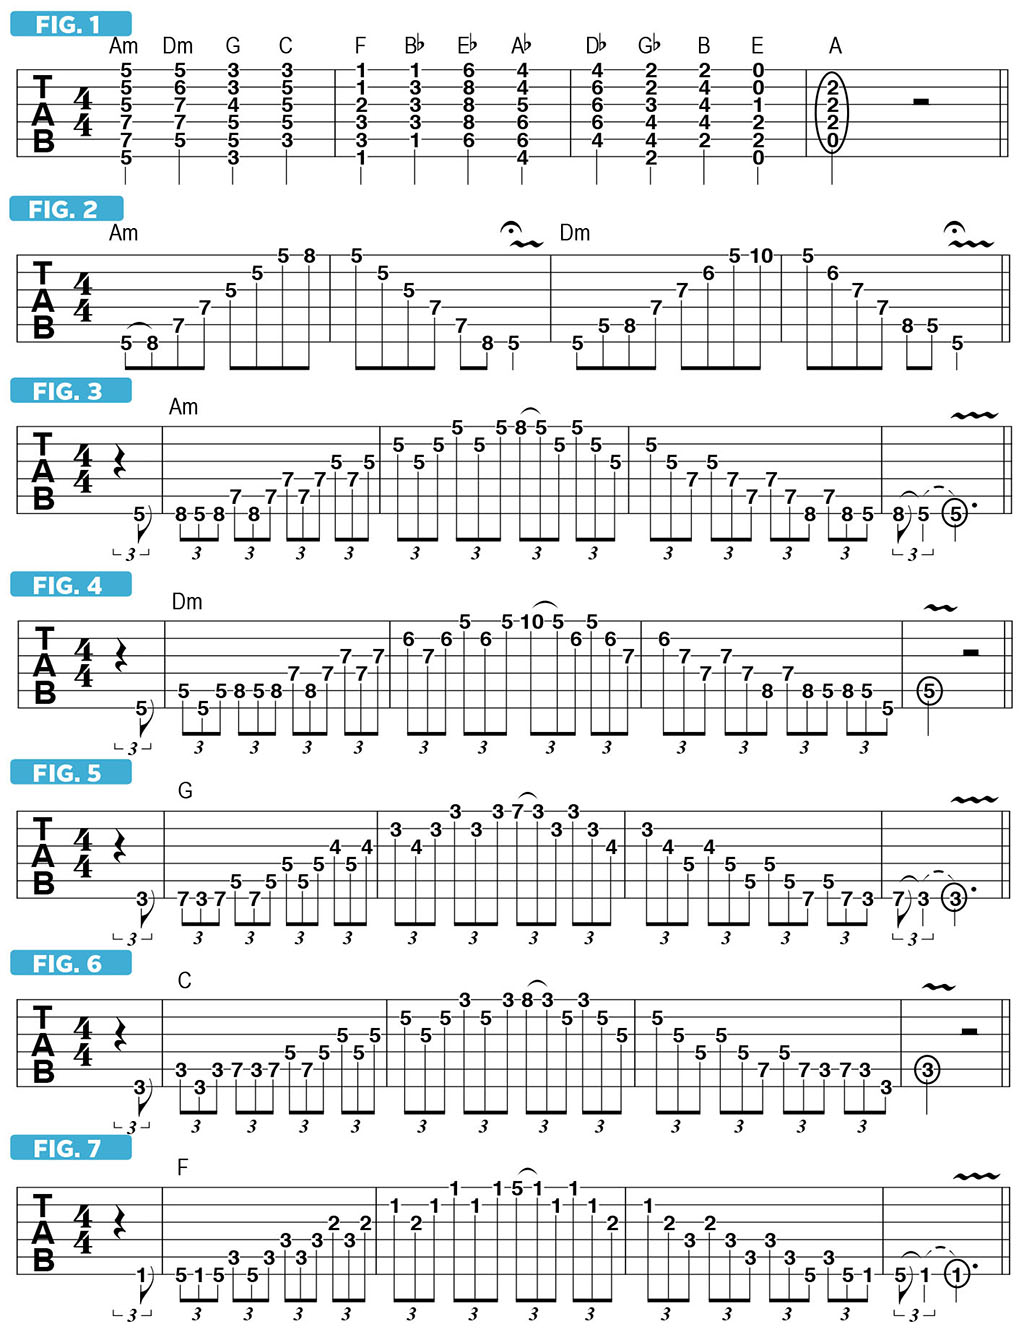 Applying a Triplet Arpeggio Sequence to the Cycle of Fourths